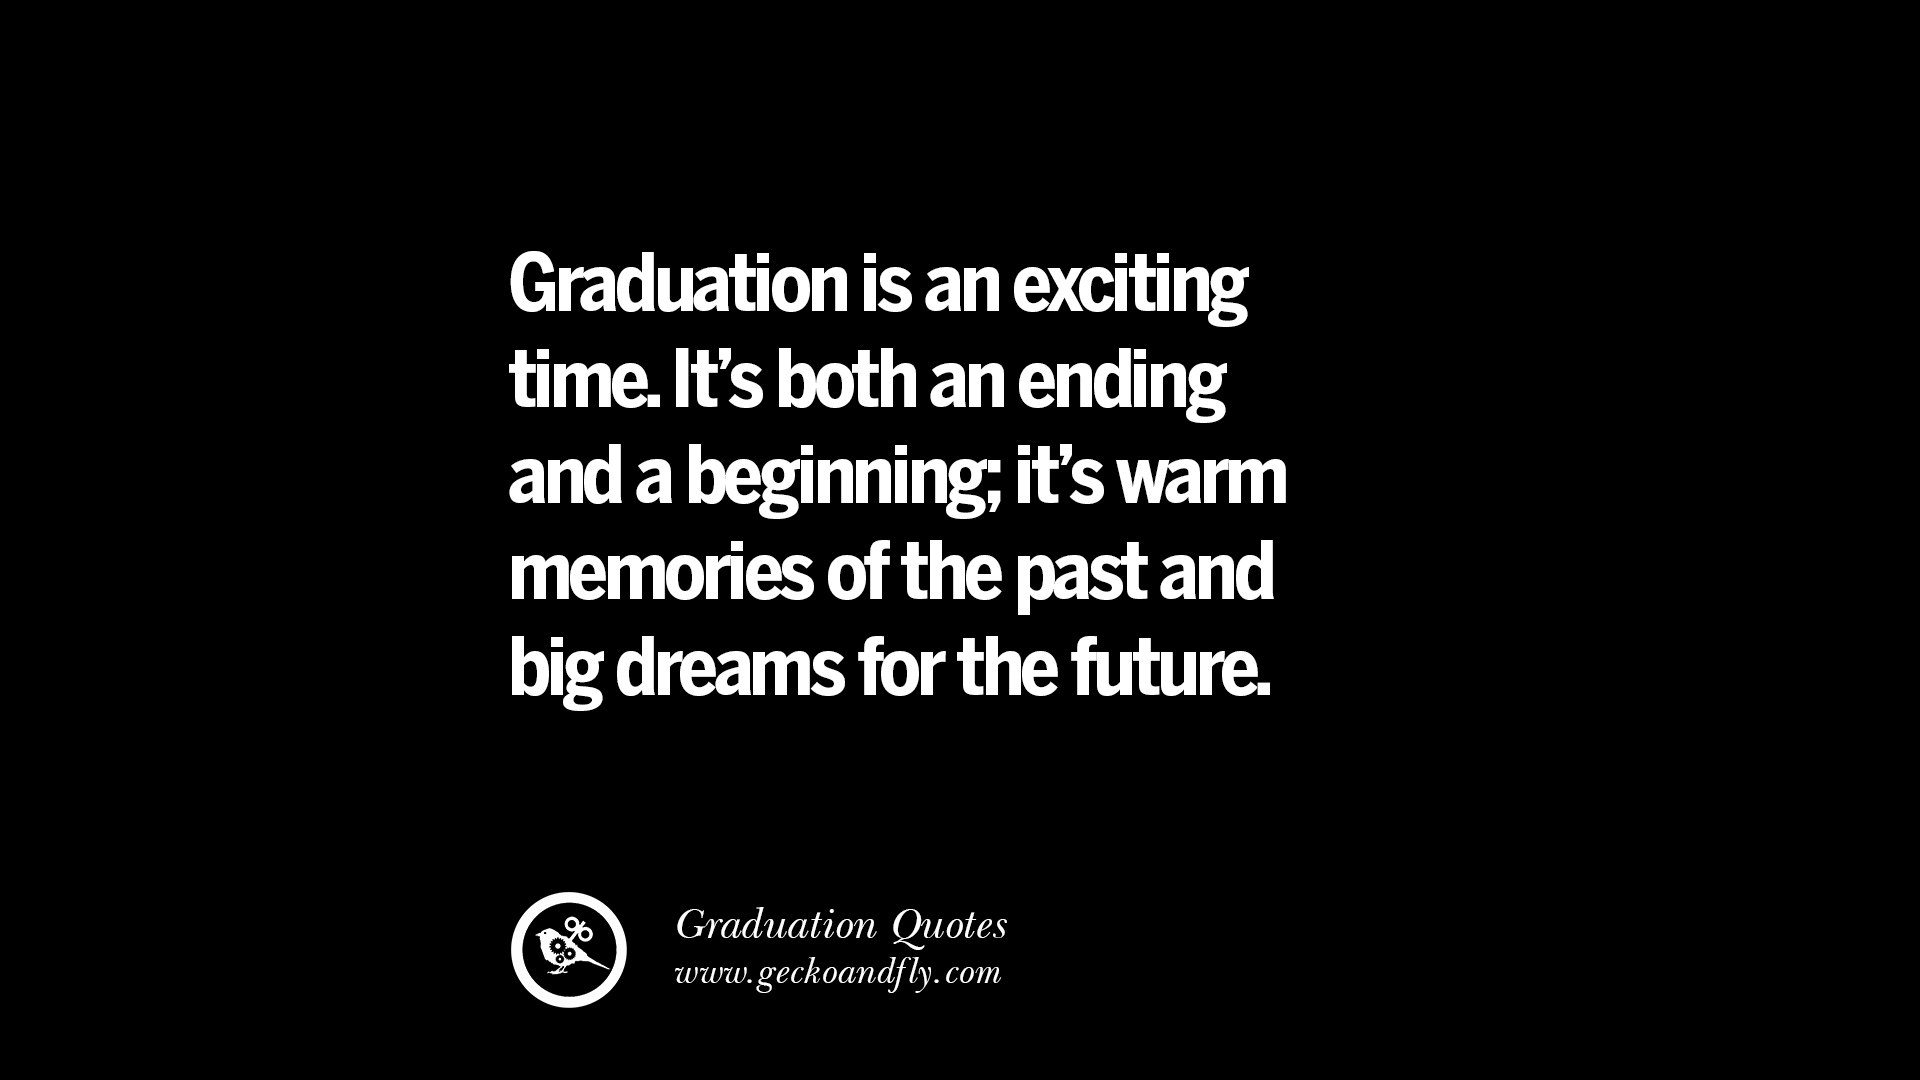 Graduation is an exciting time its both an ending and a beginning its warm memories of the past and big dreams for the future